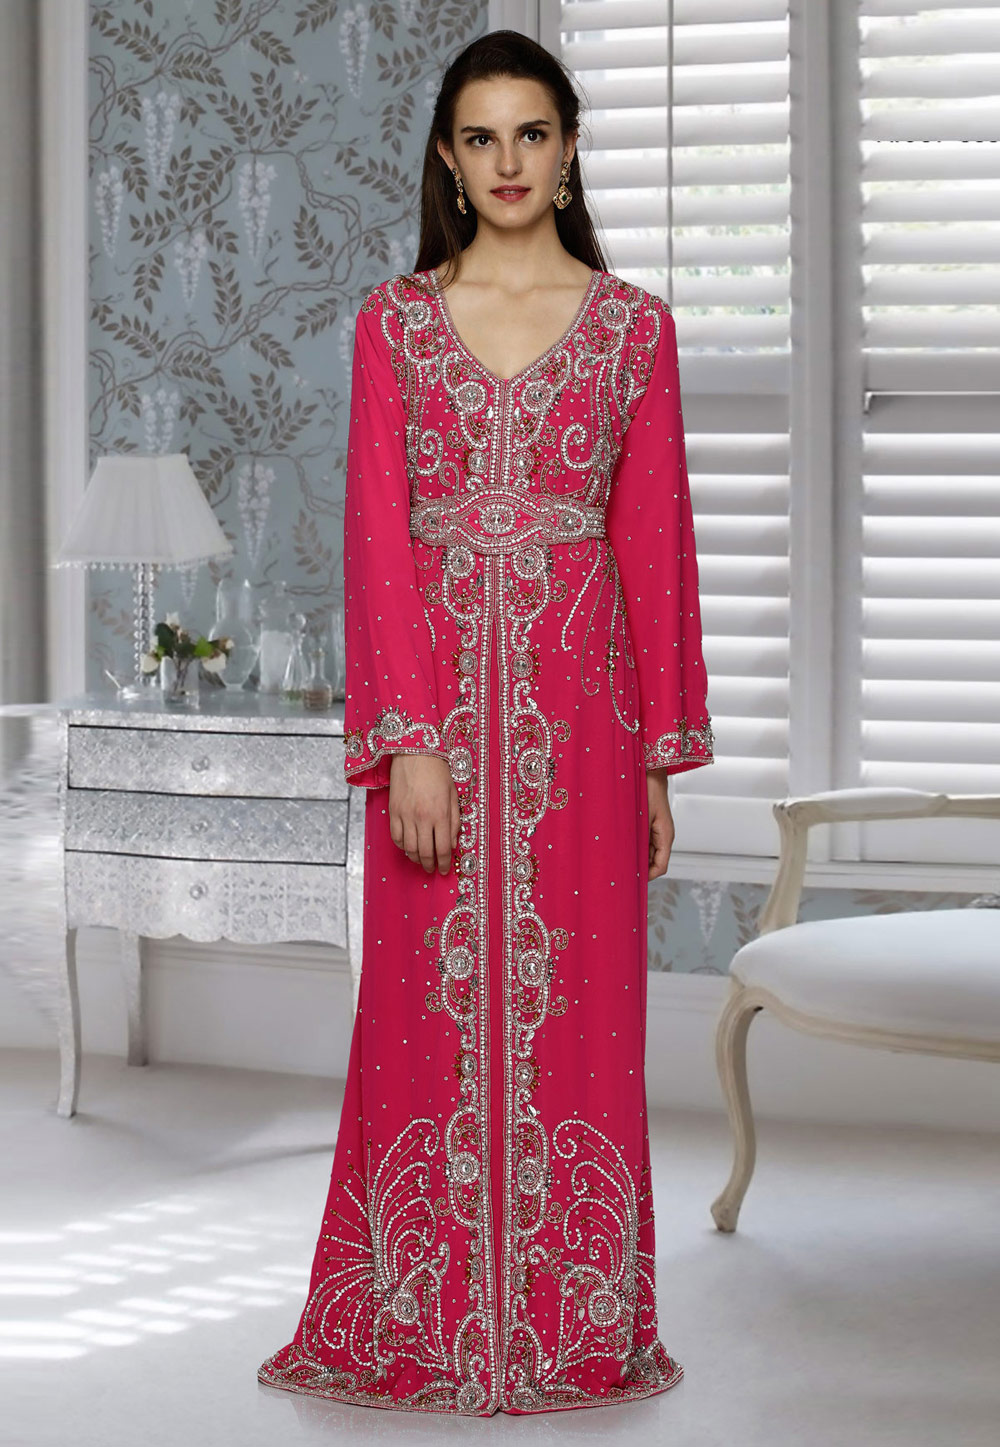 Pink Faux Georgette Embroidered Readymade Moroccan Kaftan 194785